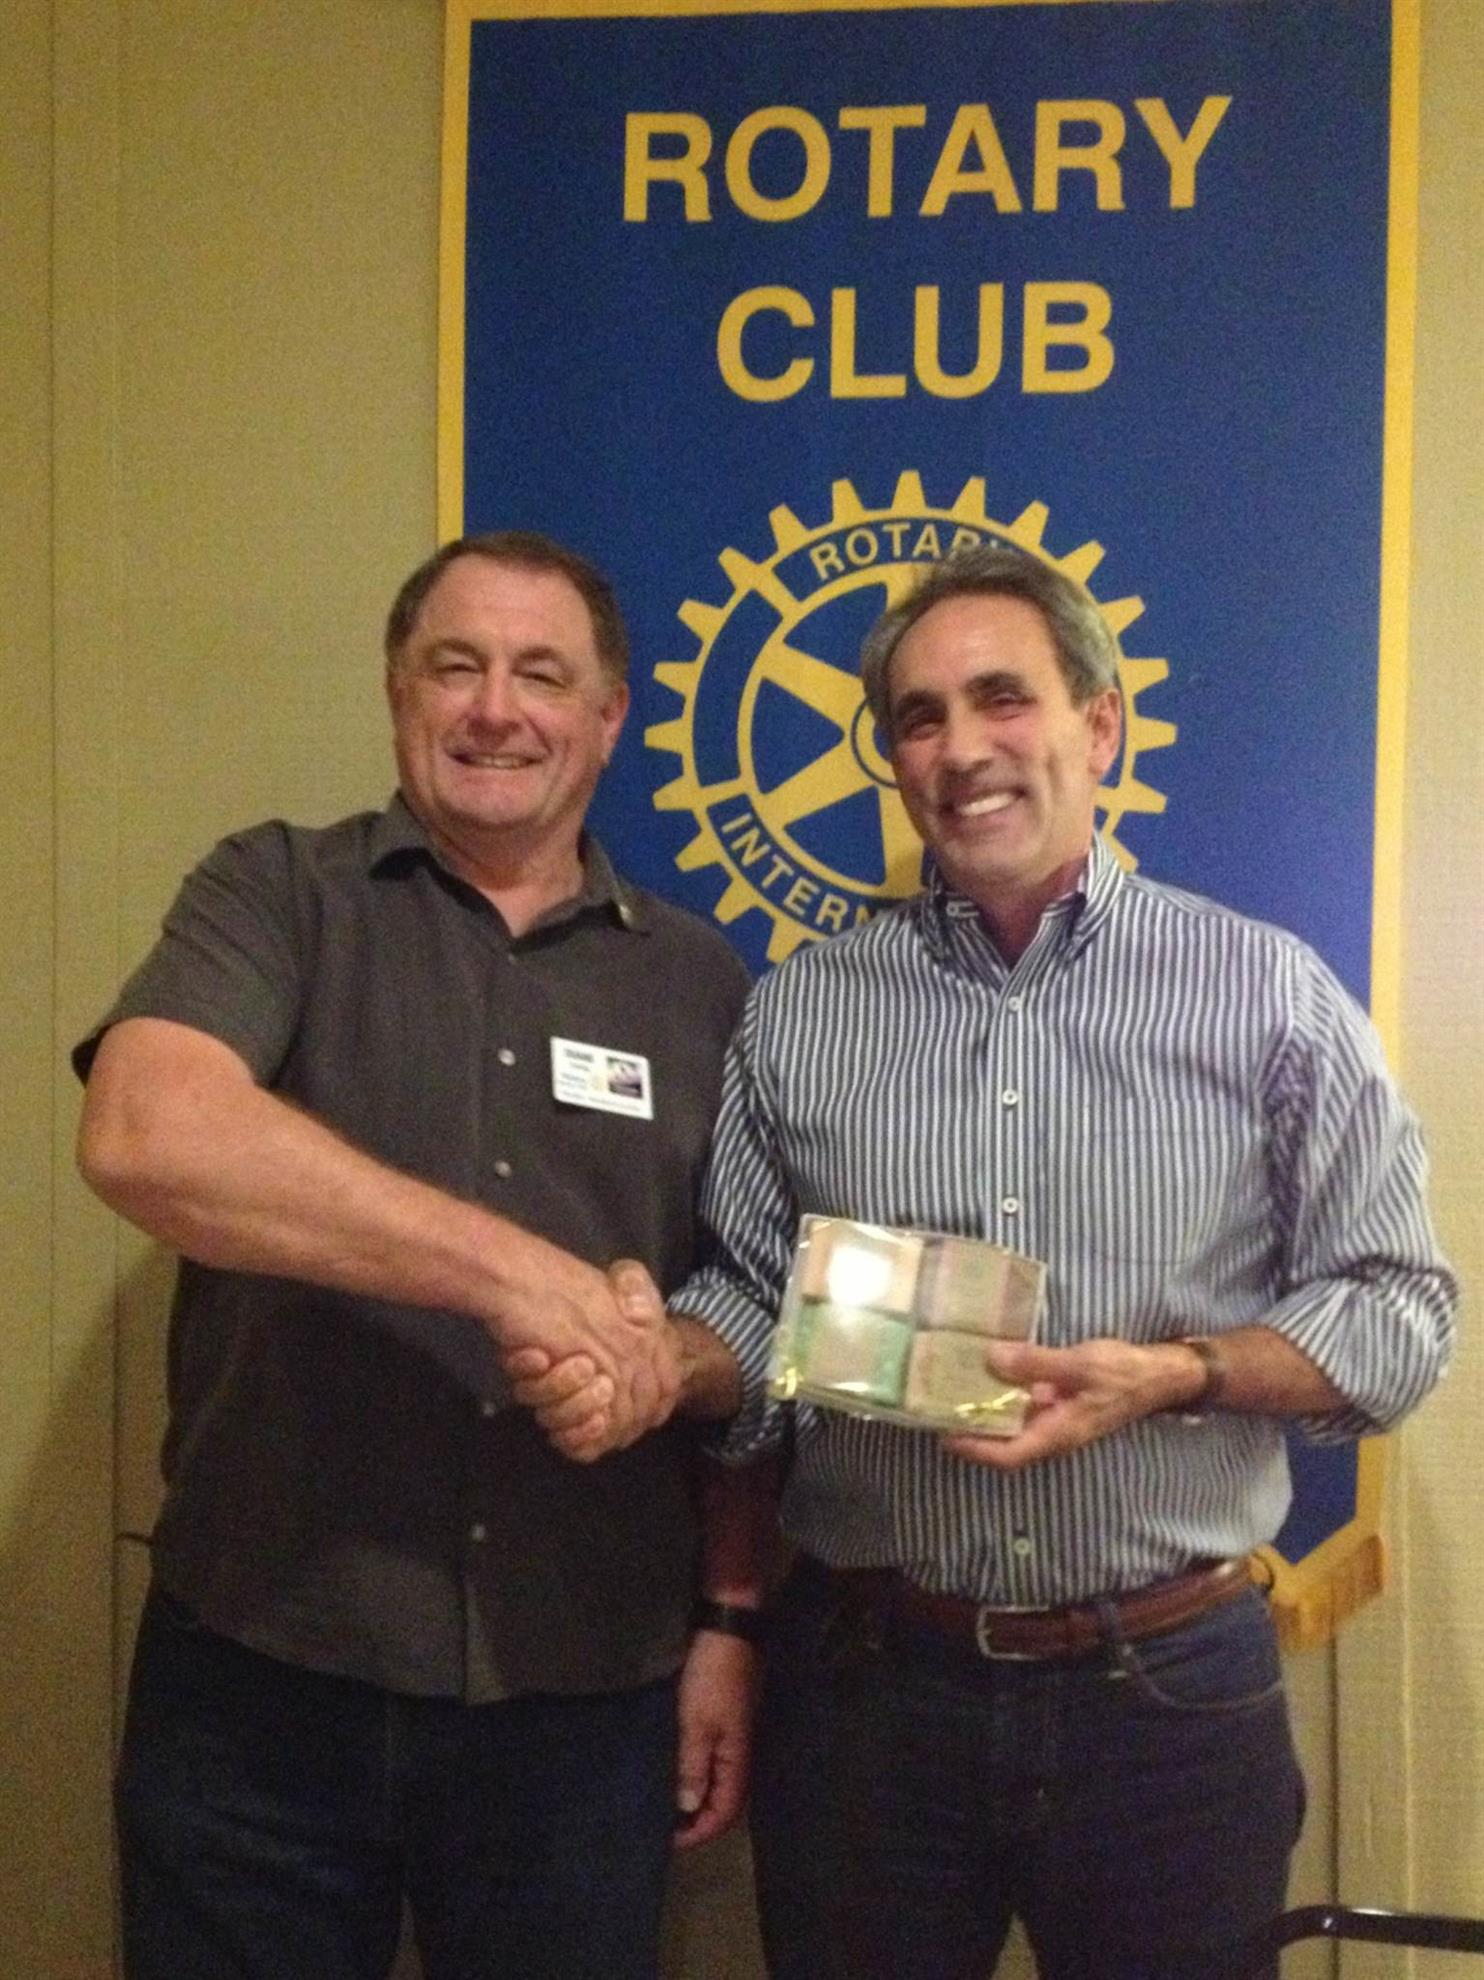 Yolo Food Bank, Food Insecurity in Yolo County | Rotary Club